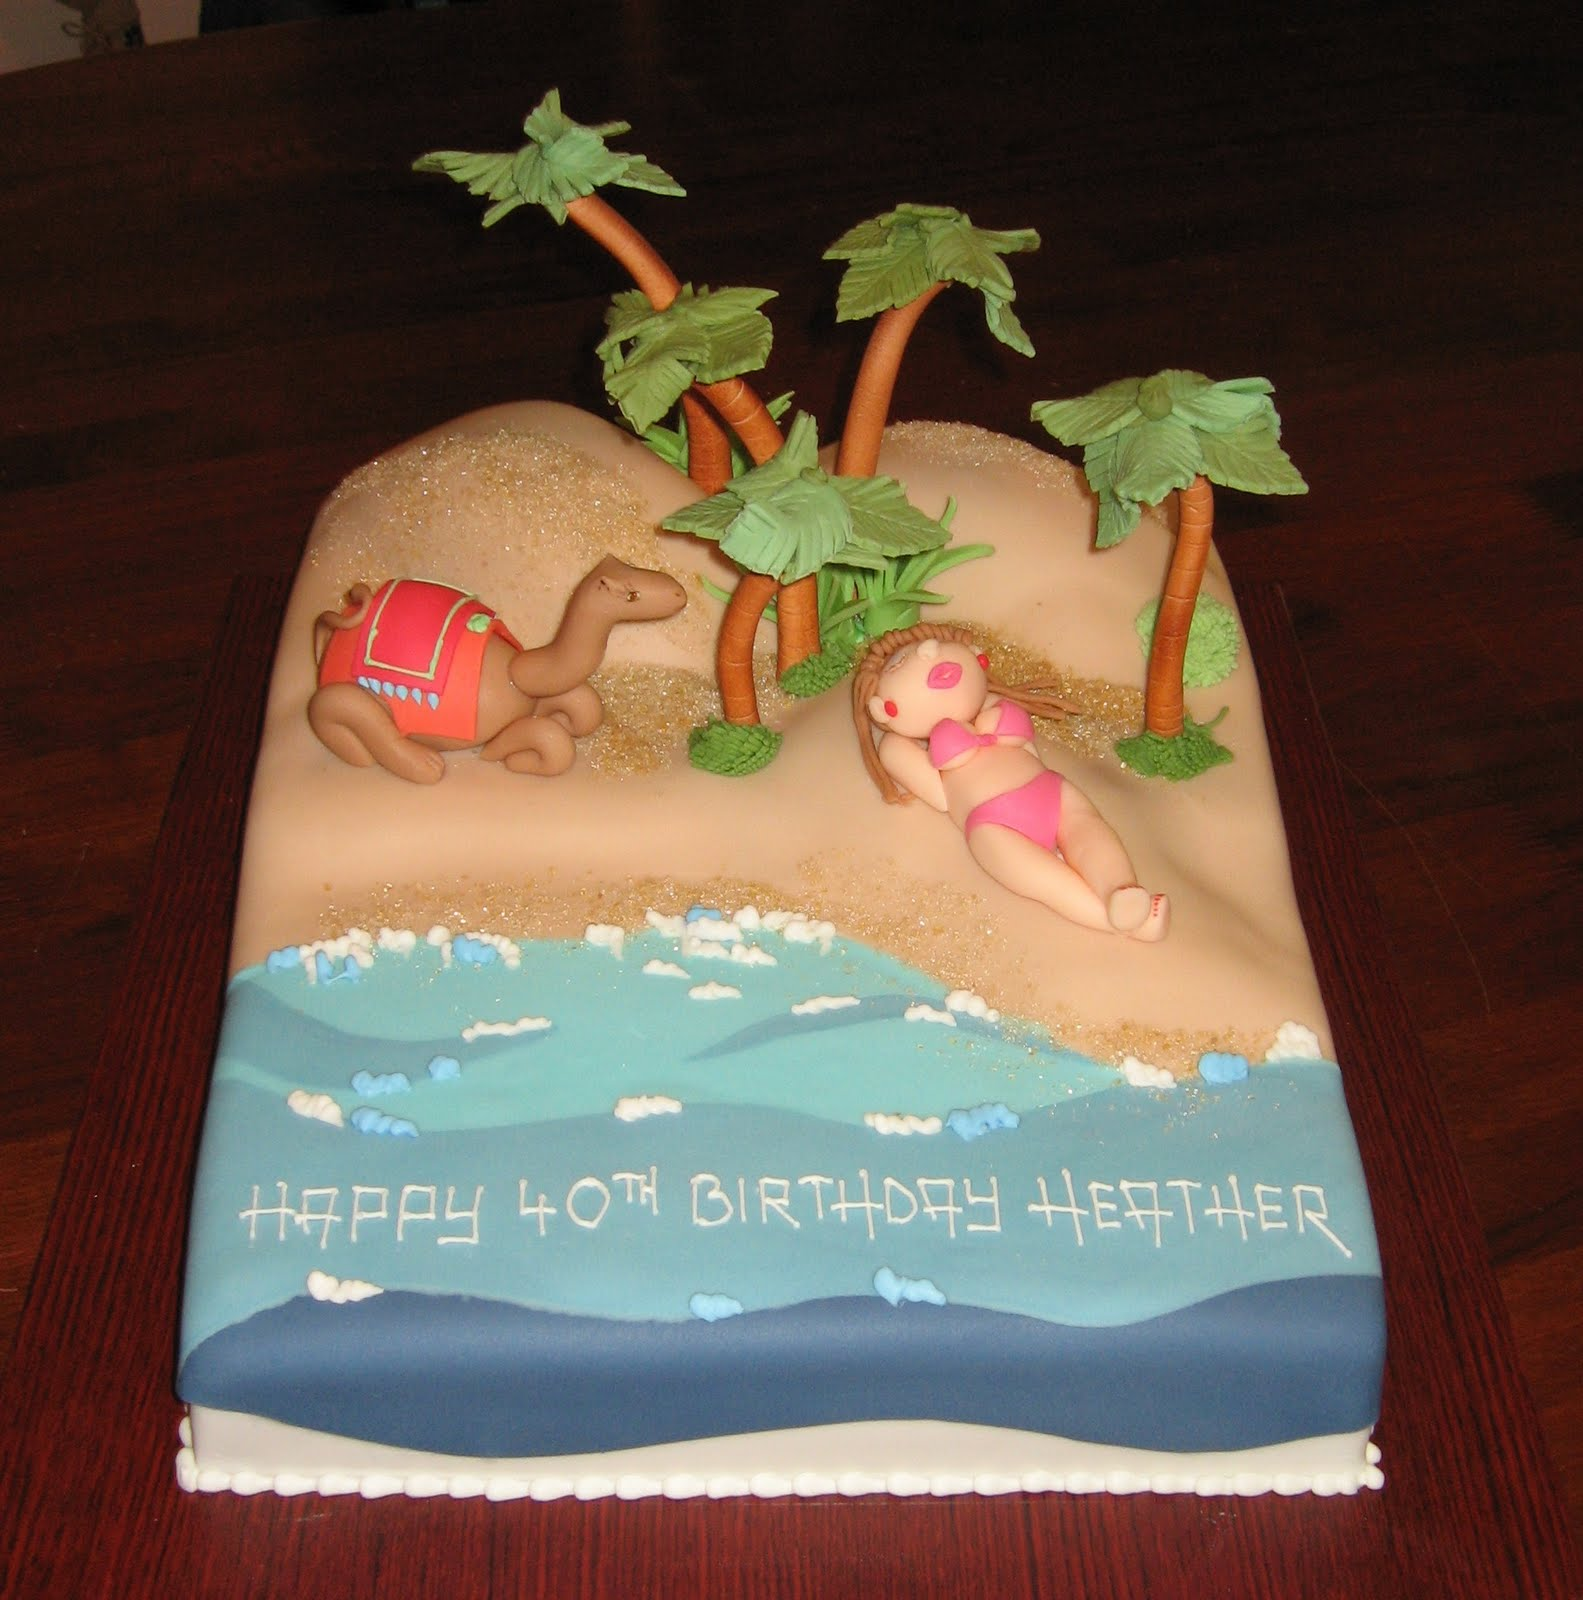 Beach Themed Birthday Cake | Beach Themed Birthday Cake Ideas | Beach Themed Birthday Cake ...